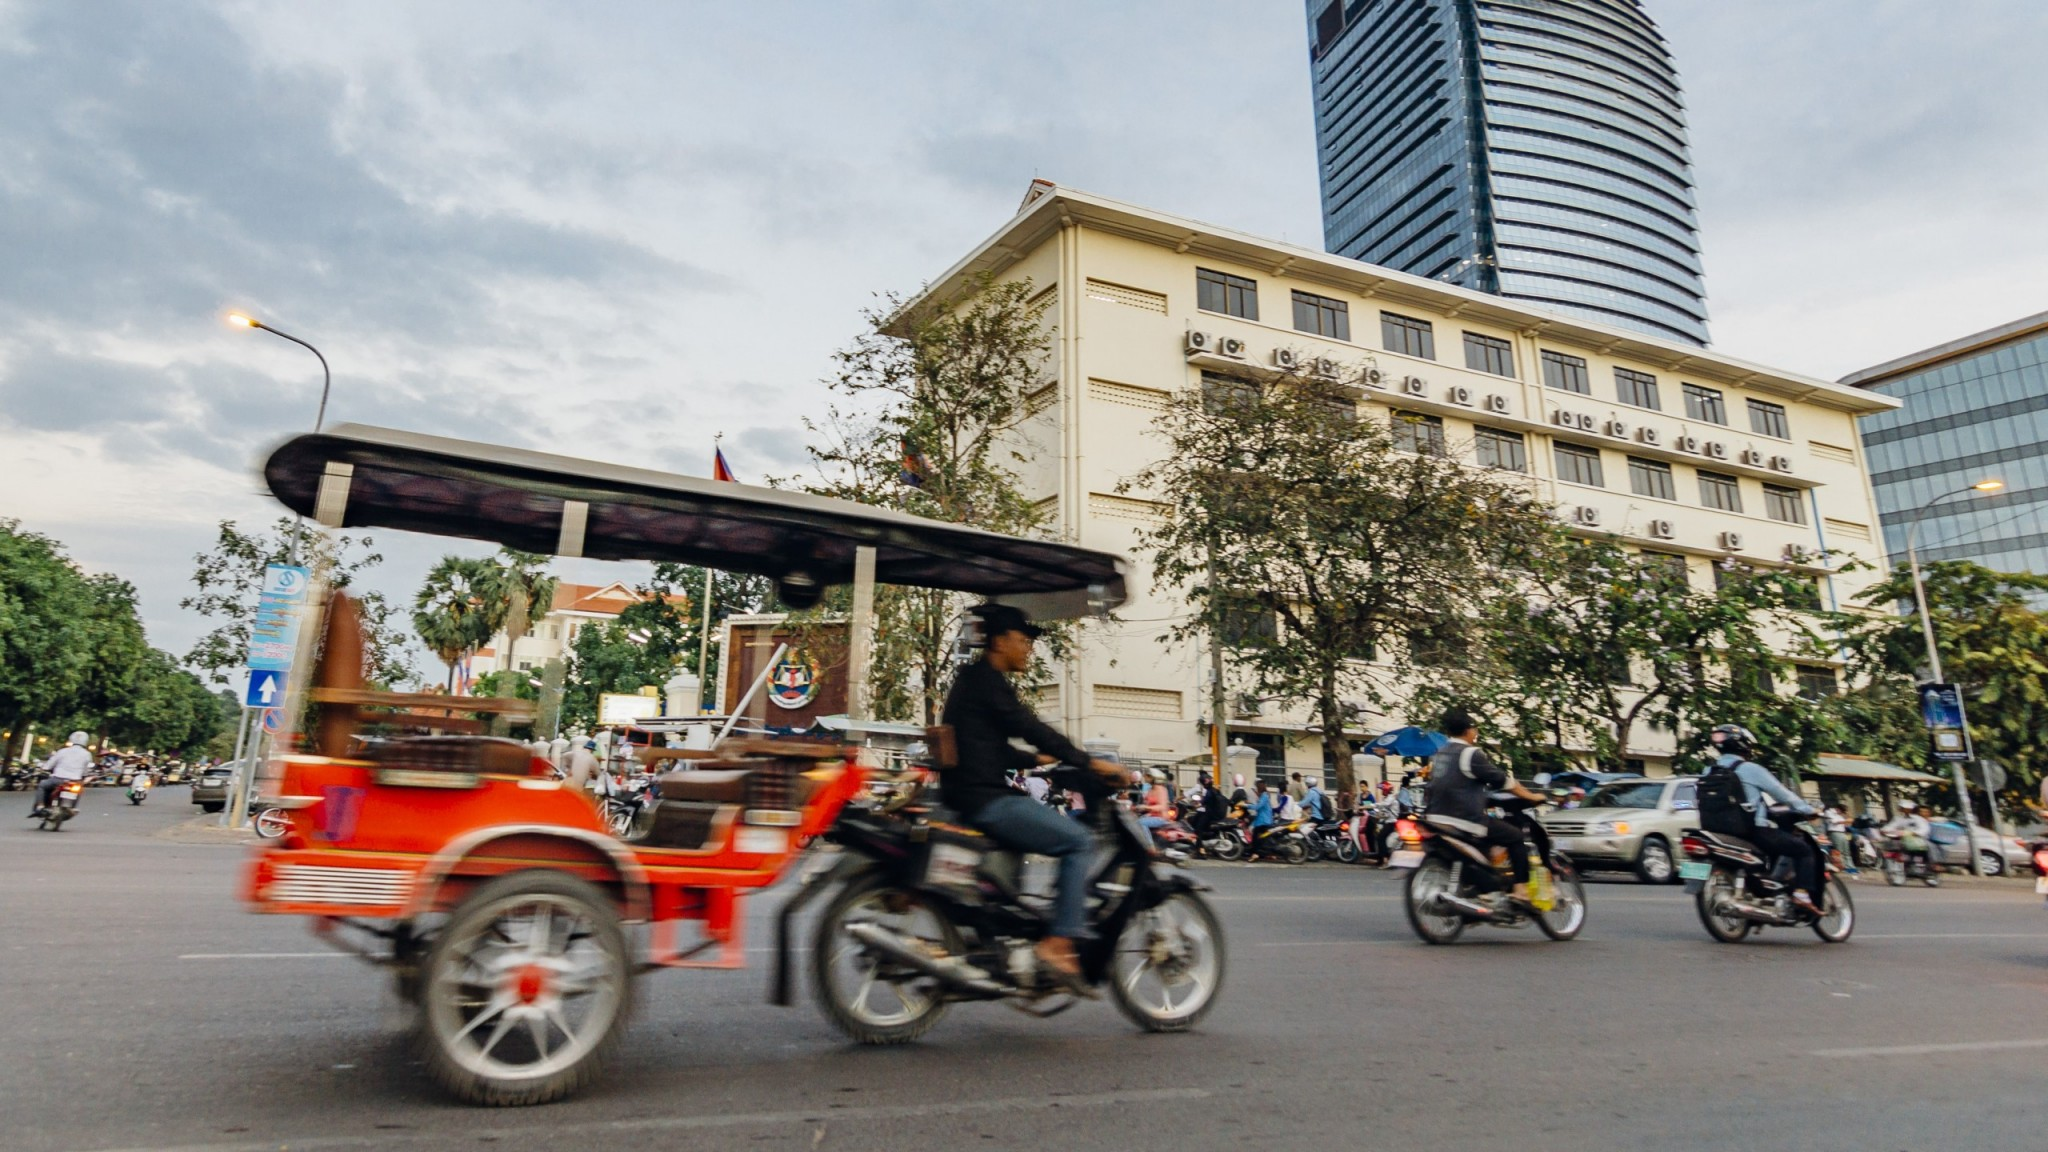 People driving motorbikes on the street in Phnom Penh, Cambodia